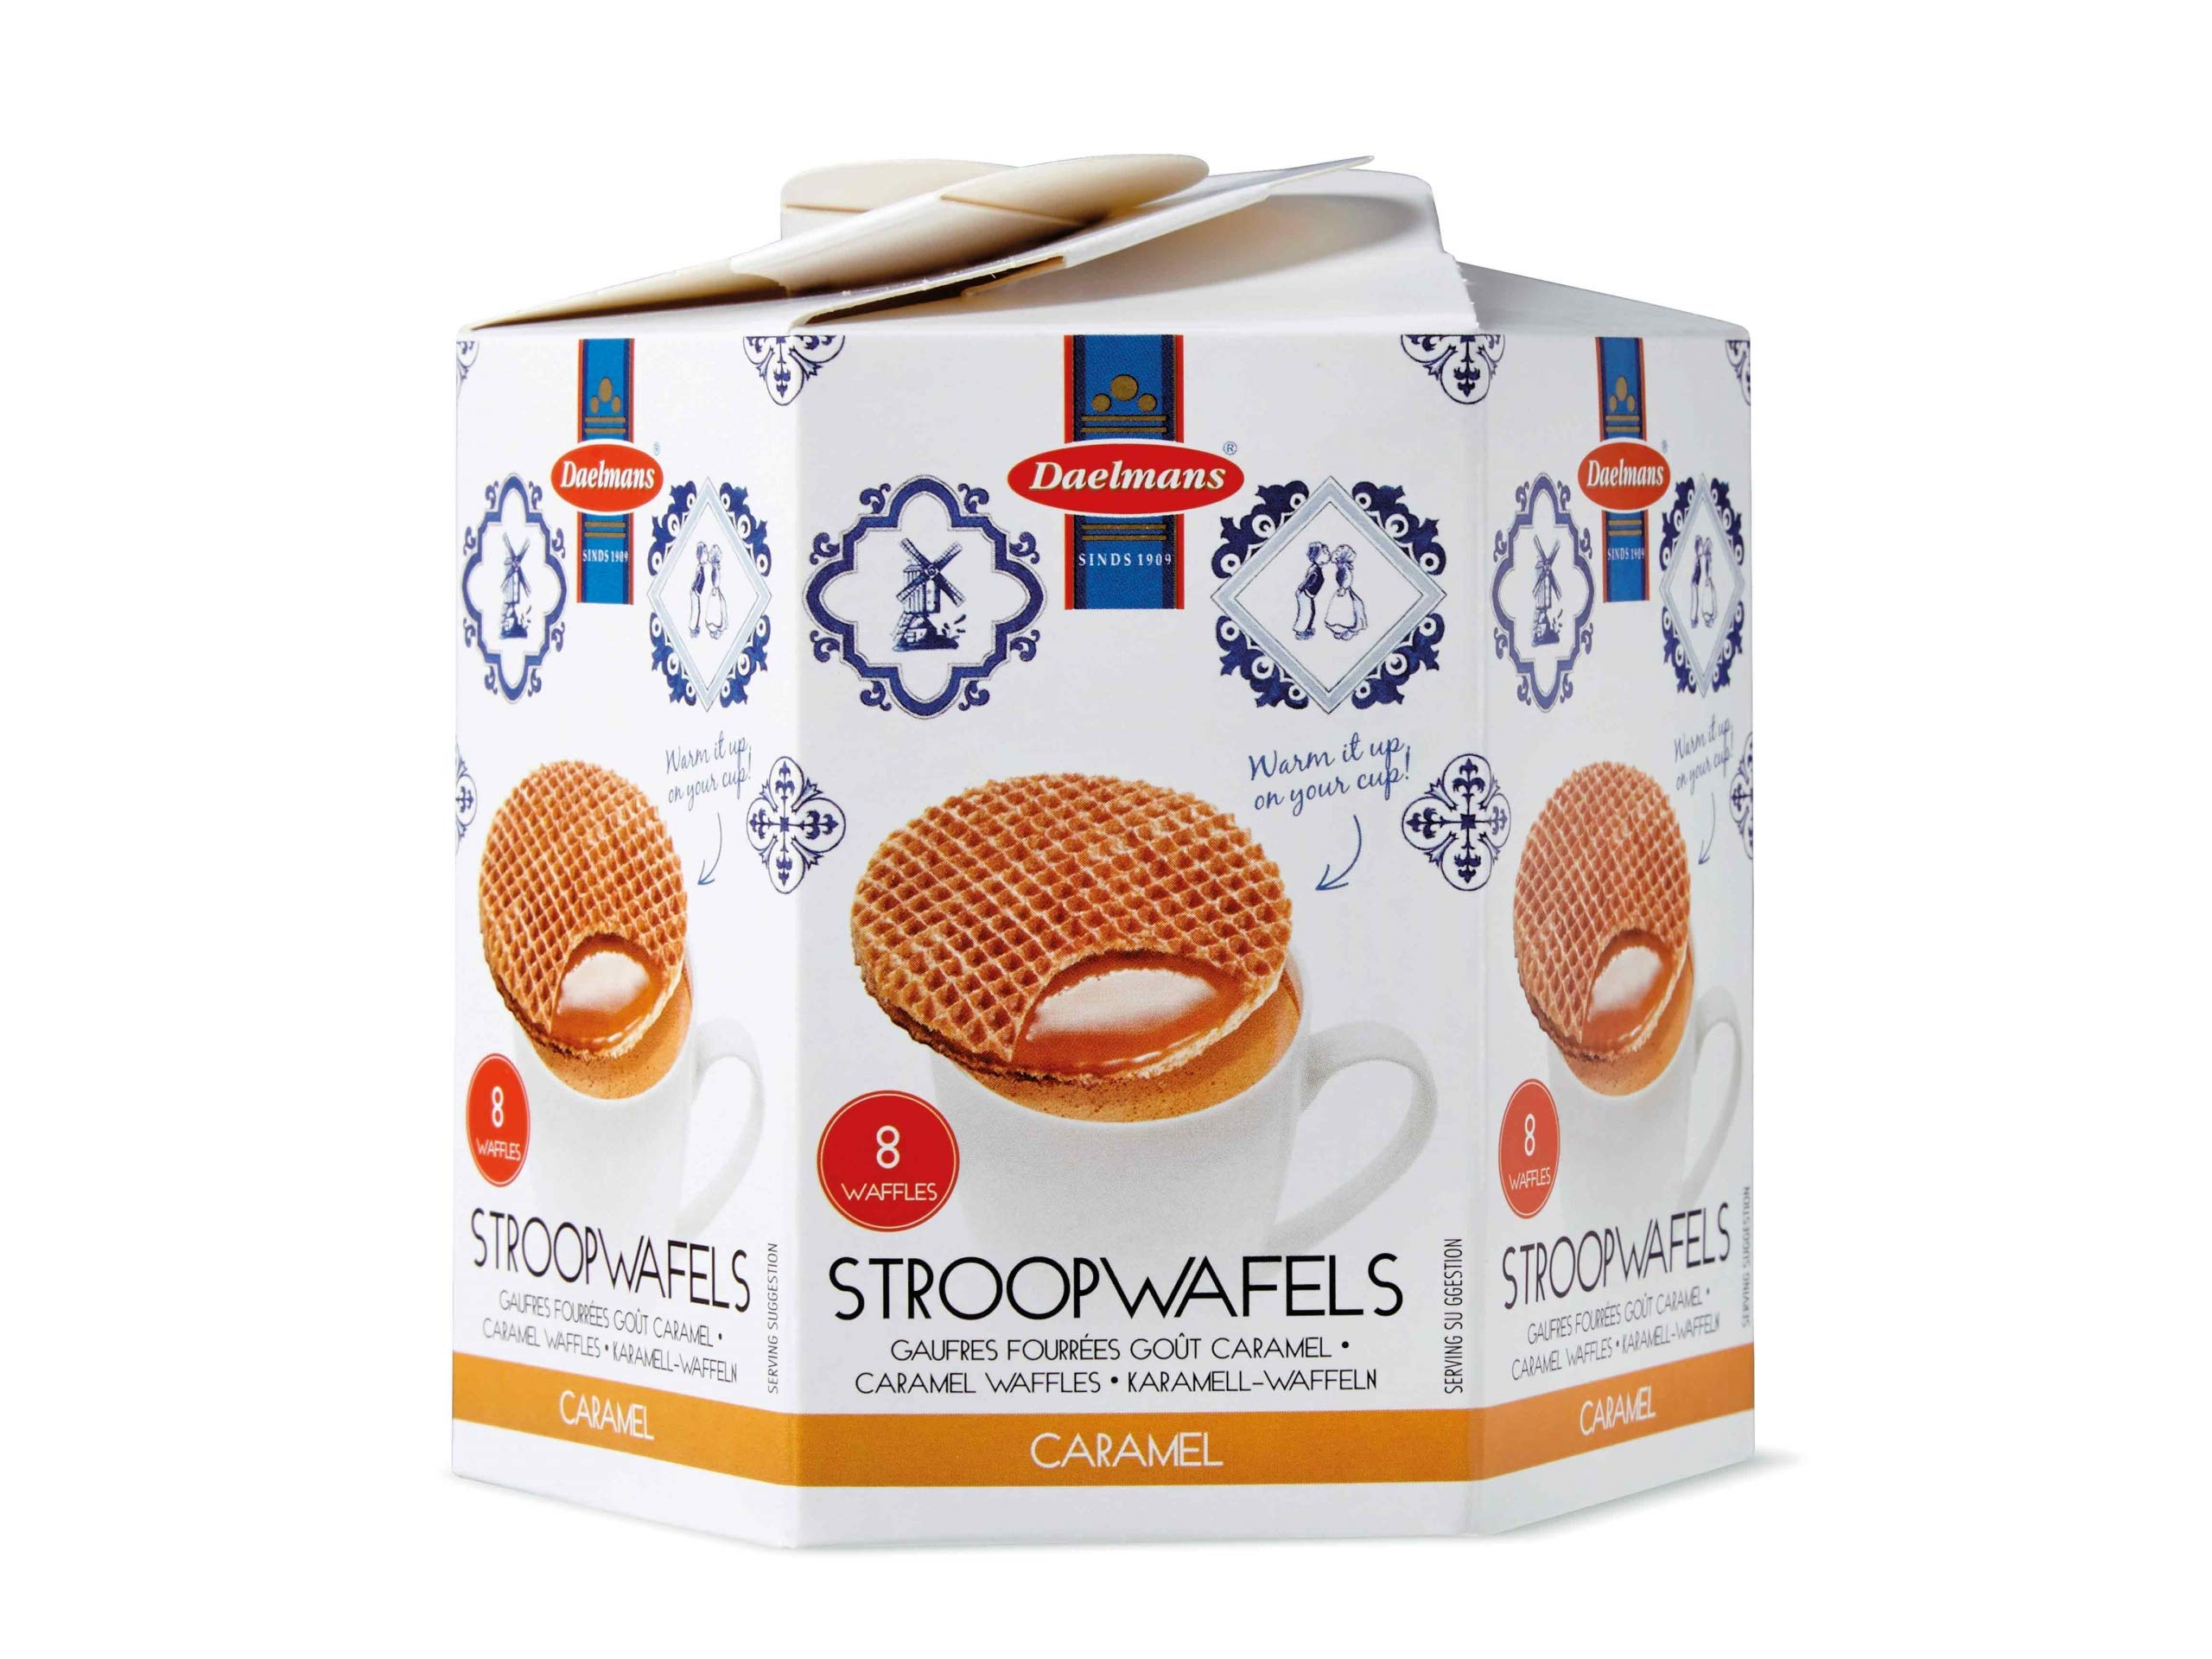 DAELMANS Stroopwafels, Dutch Waffles Soft Toasted, 4 Pack Assortment, Caramel, Office Snack, Kosher Dairy, Authentic Made In Holland, 8 Stroopwafels Per Box (4 Pack)